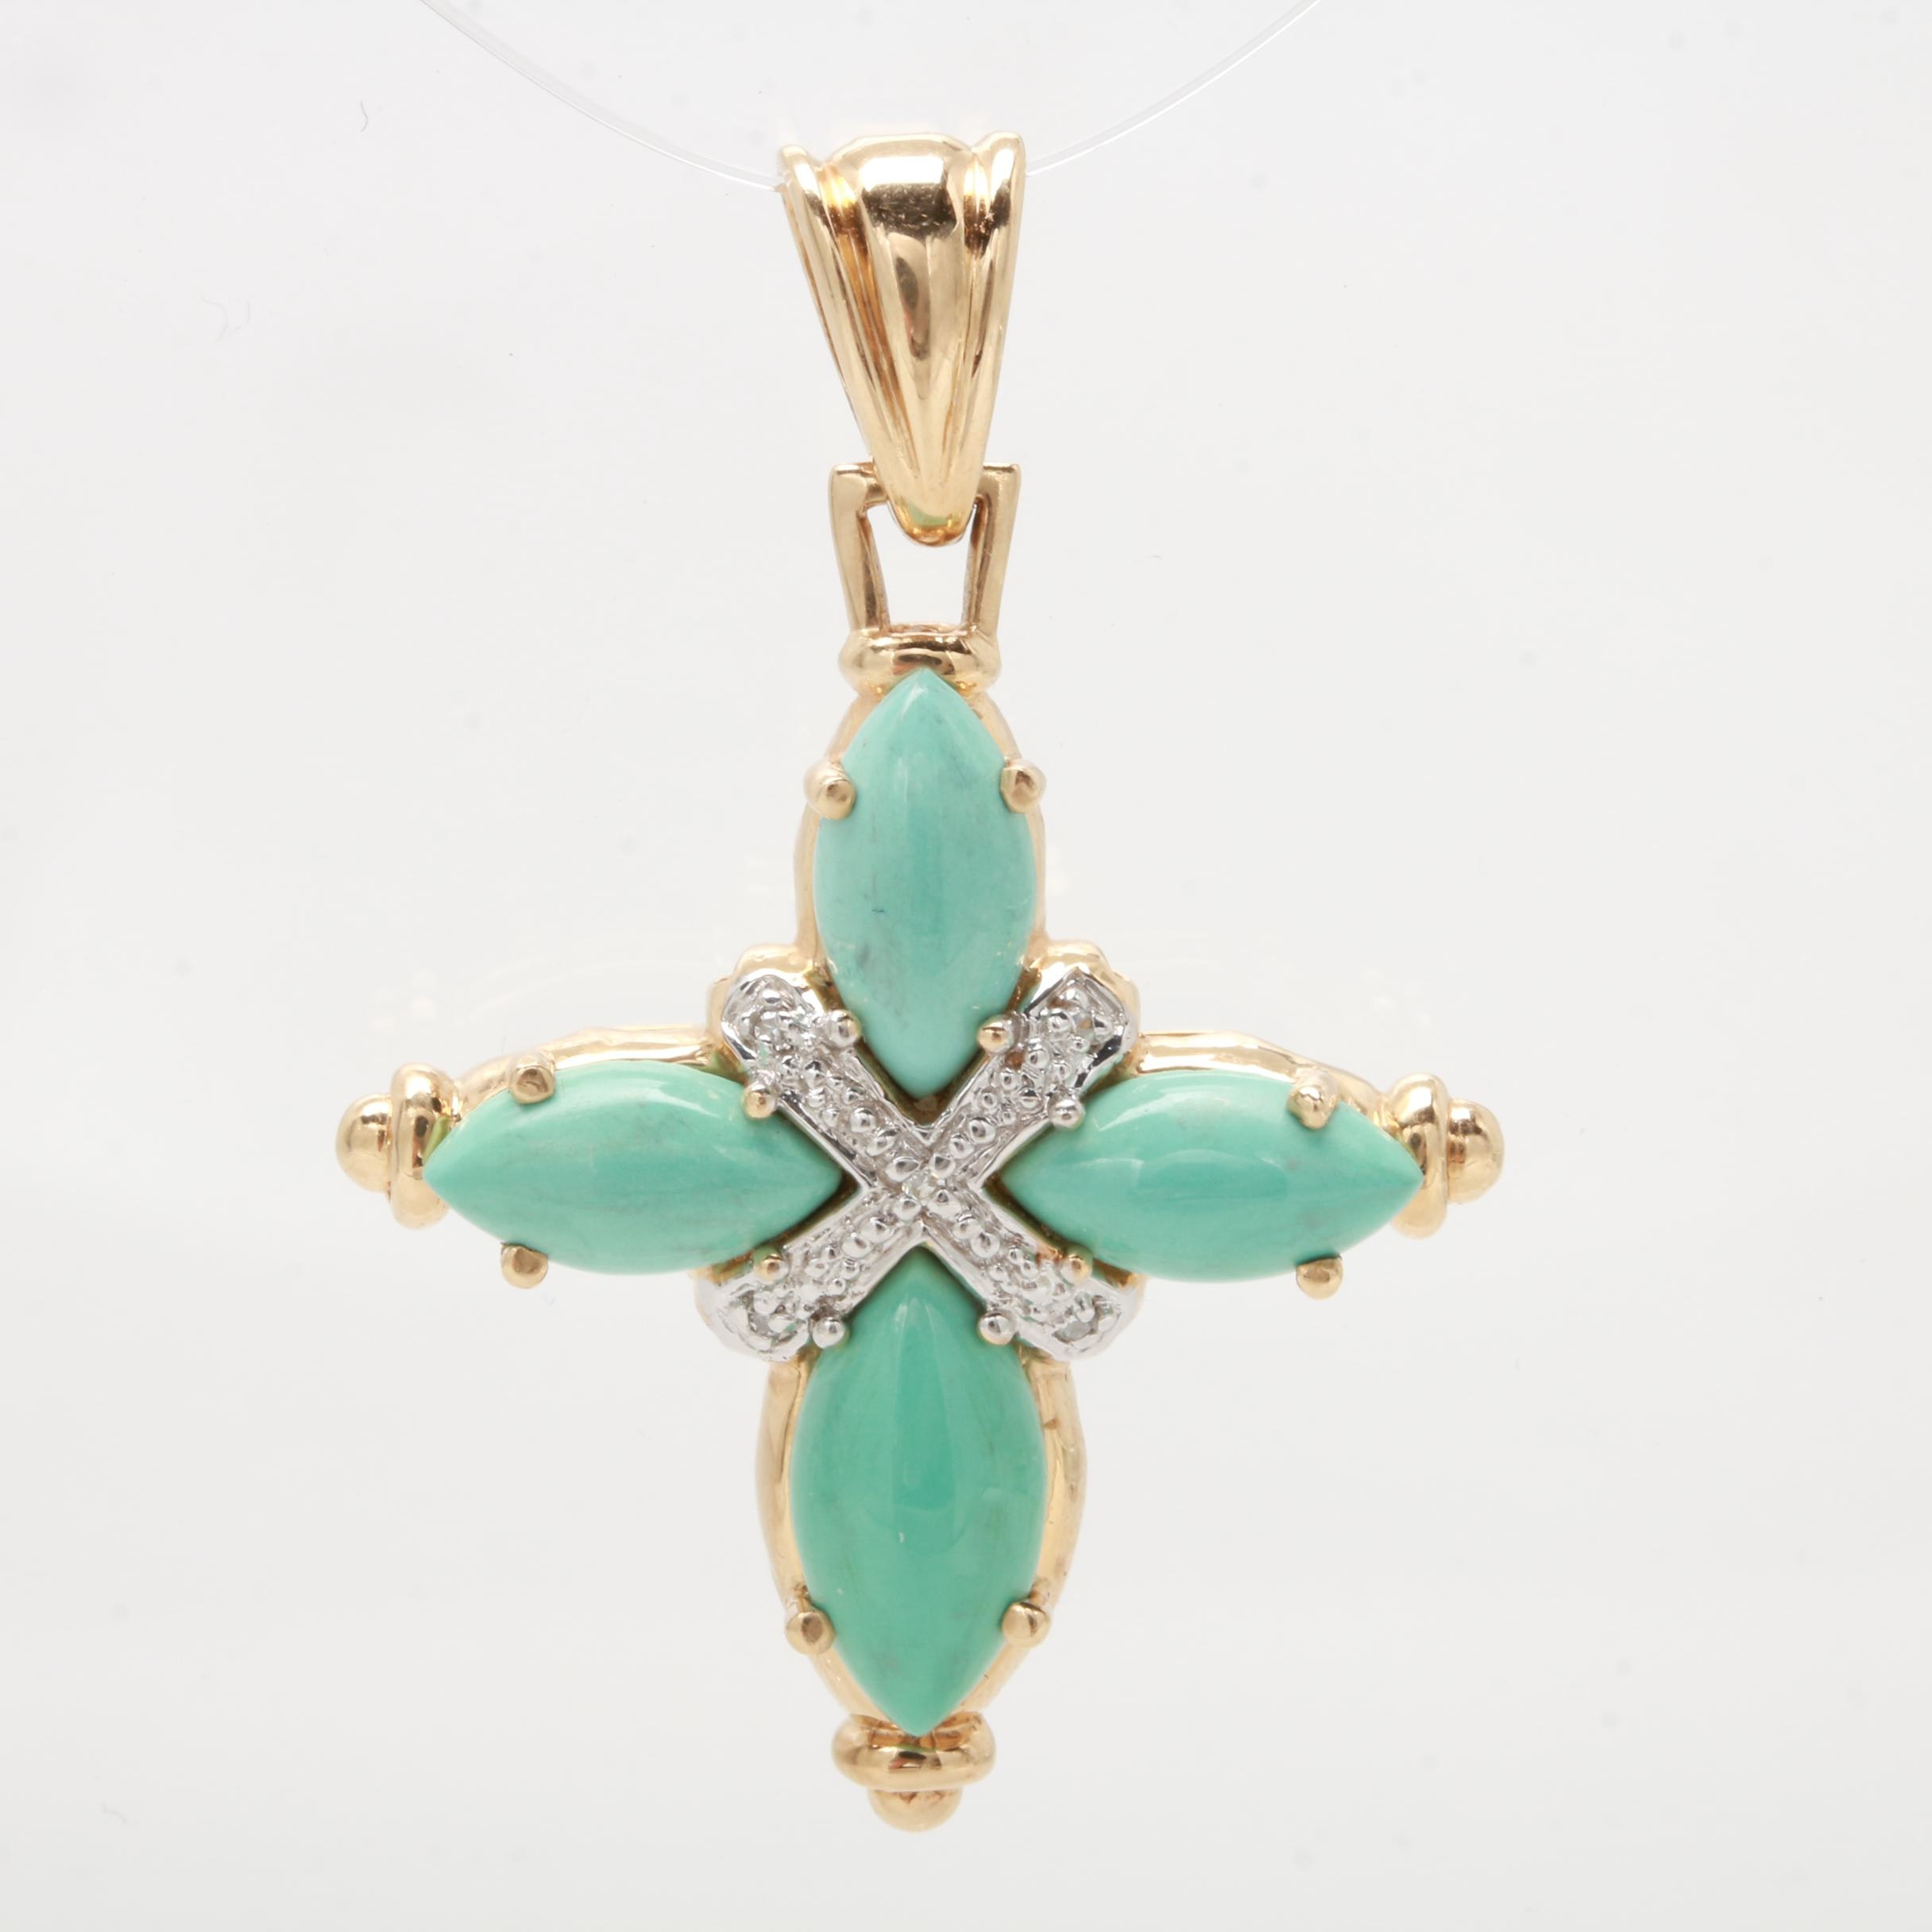 14K Yellow Gold Turquoise and Diamond Pendant